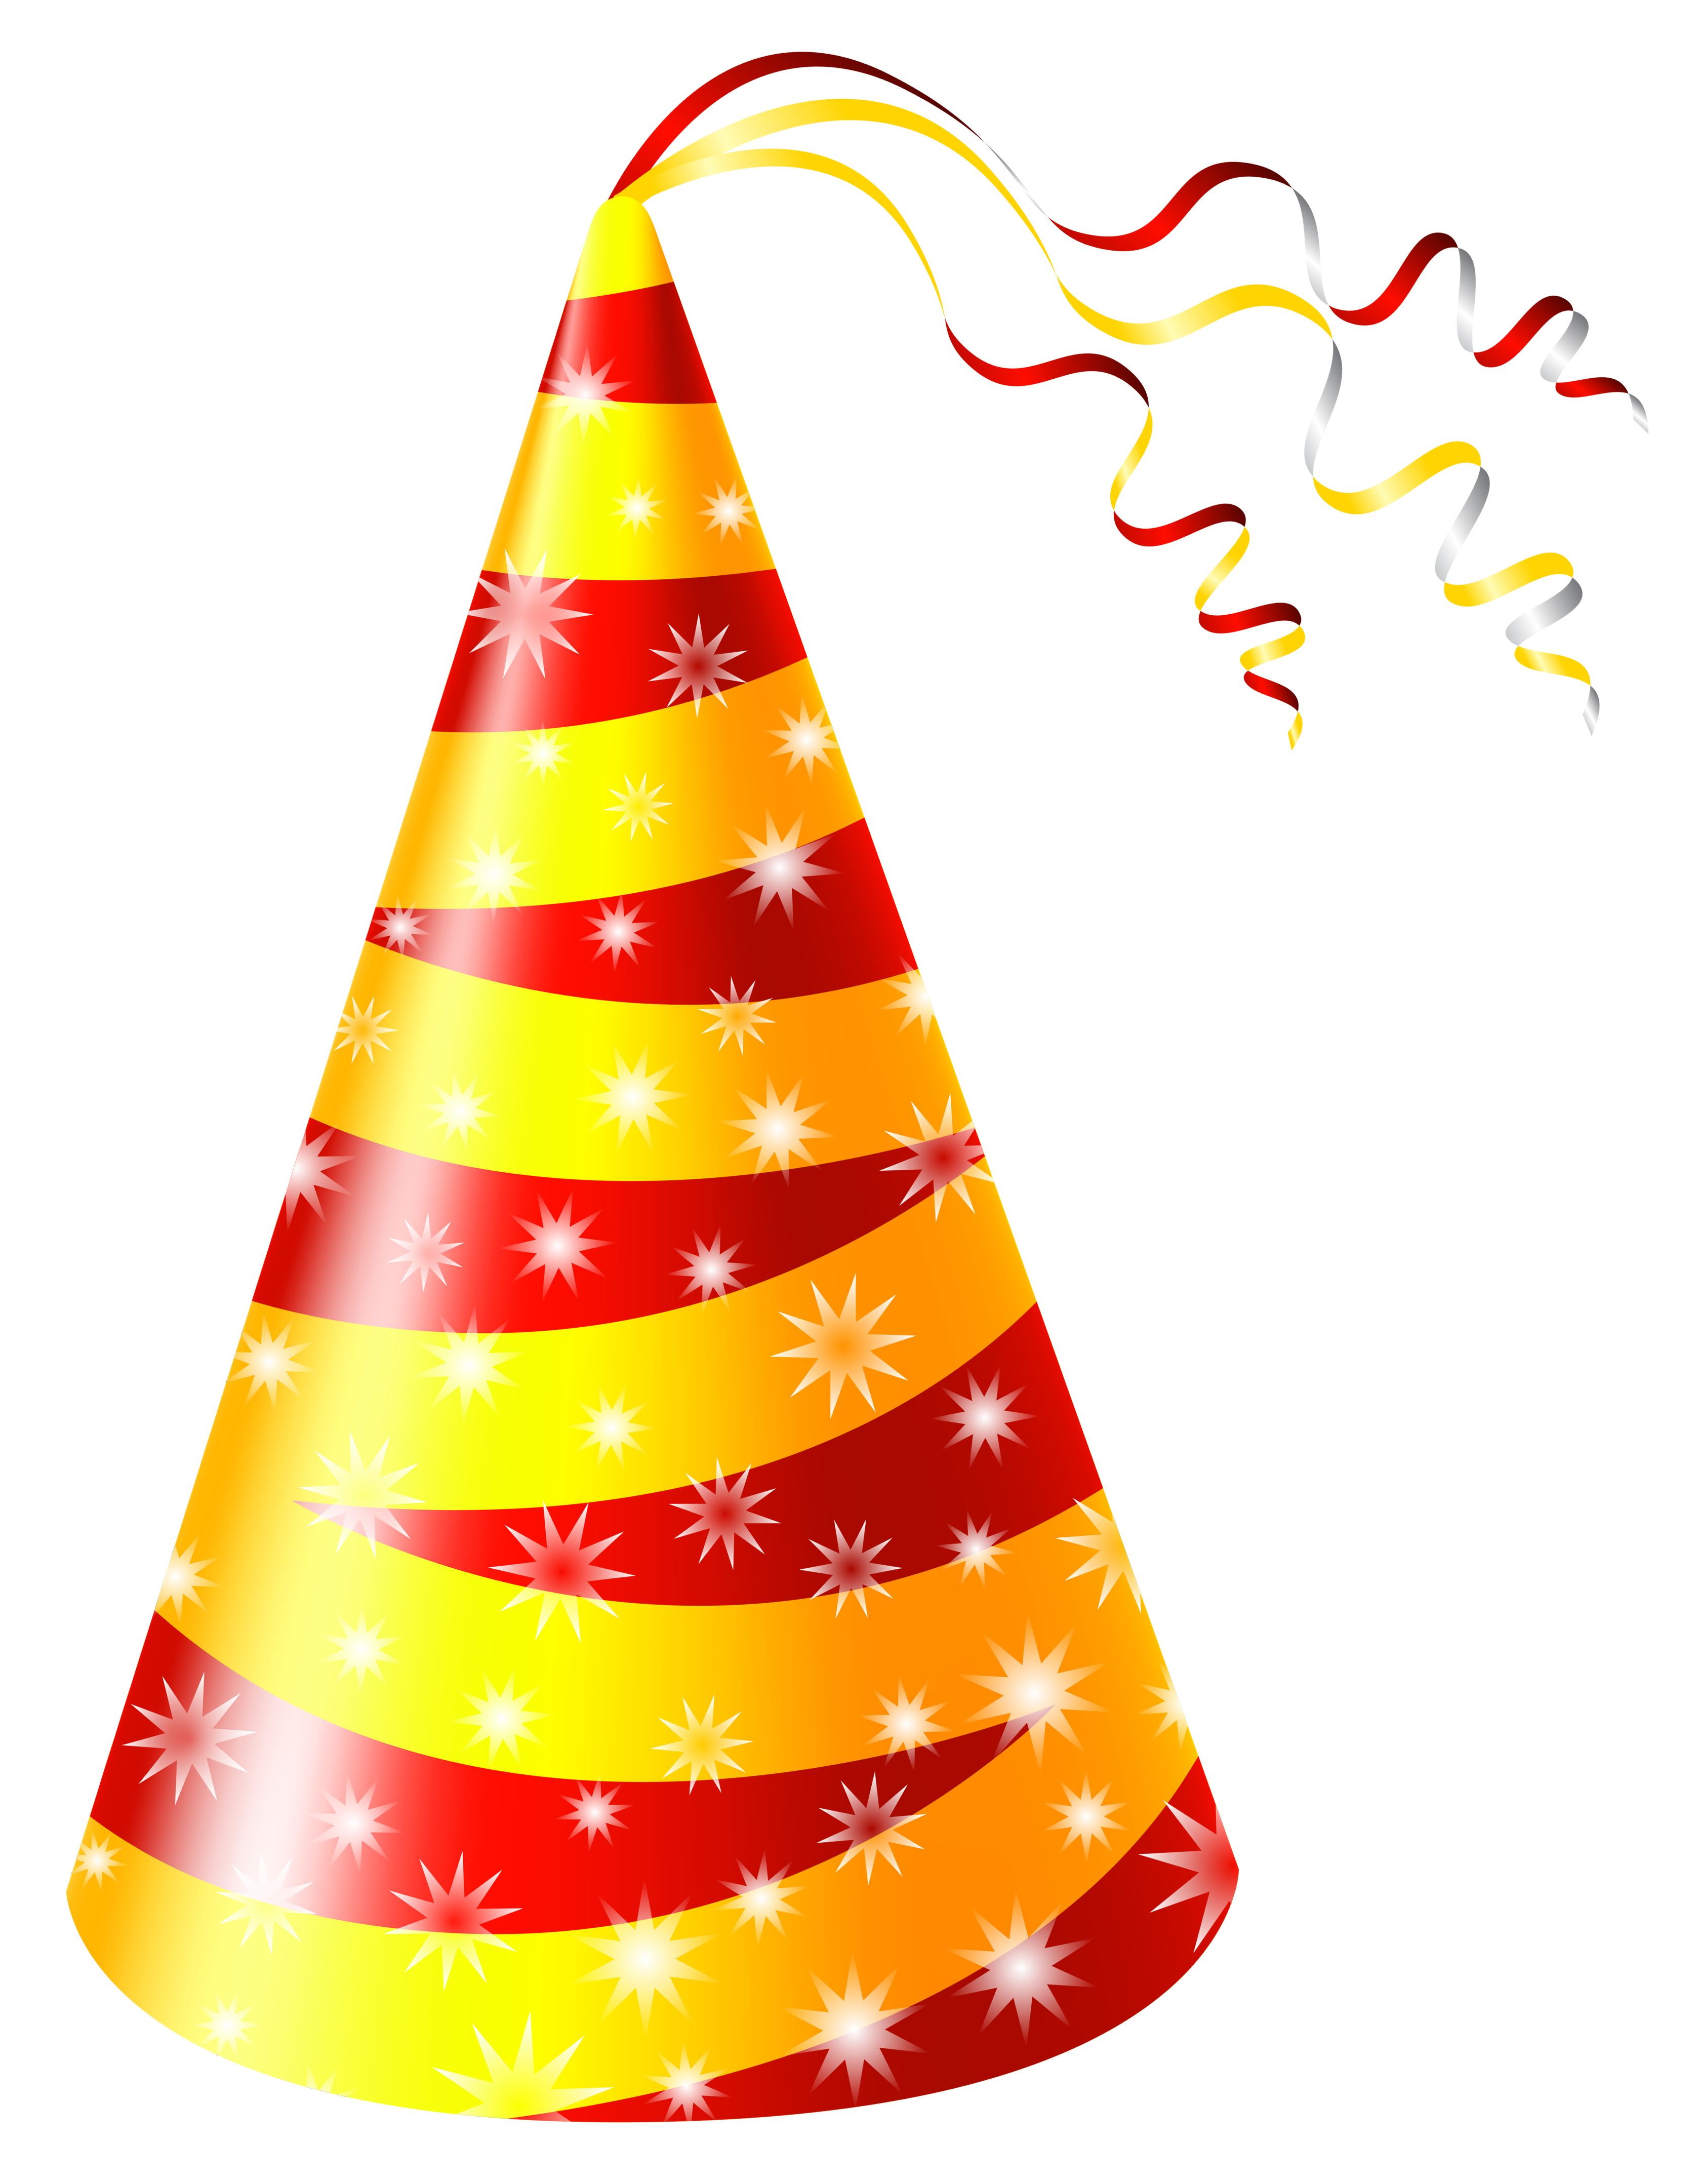 Birthday hat yellow and red party hat clipart image